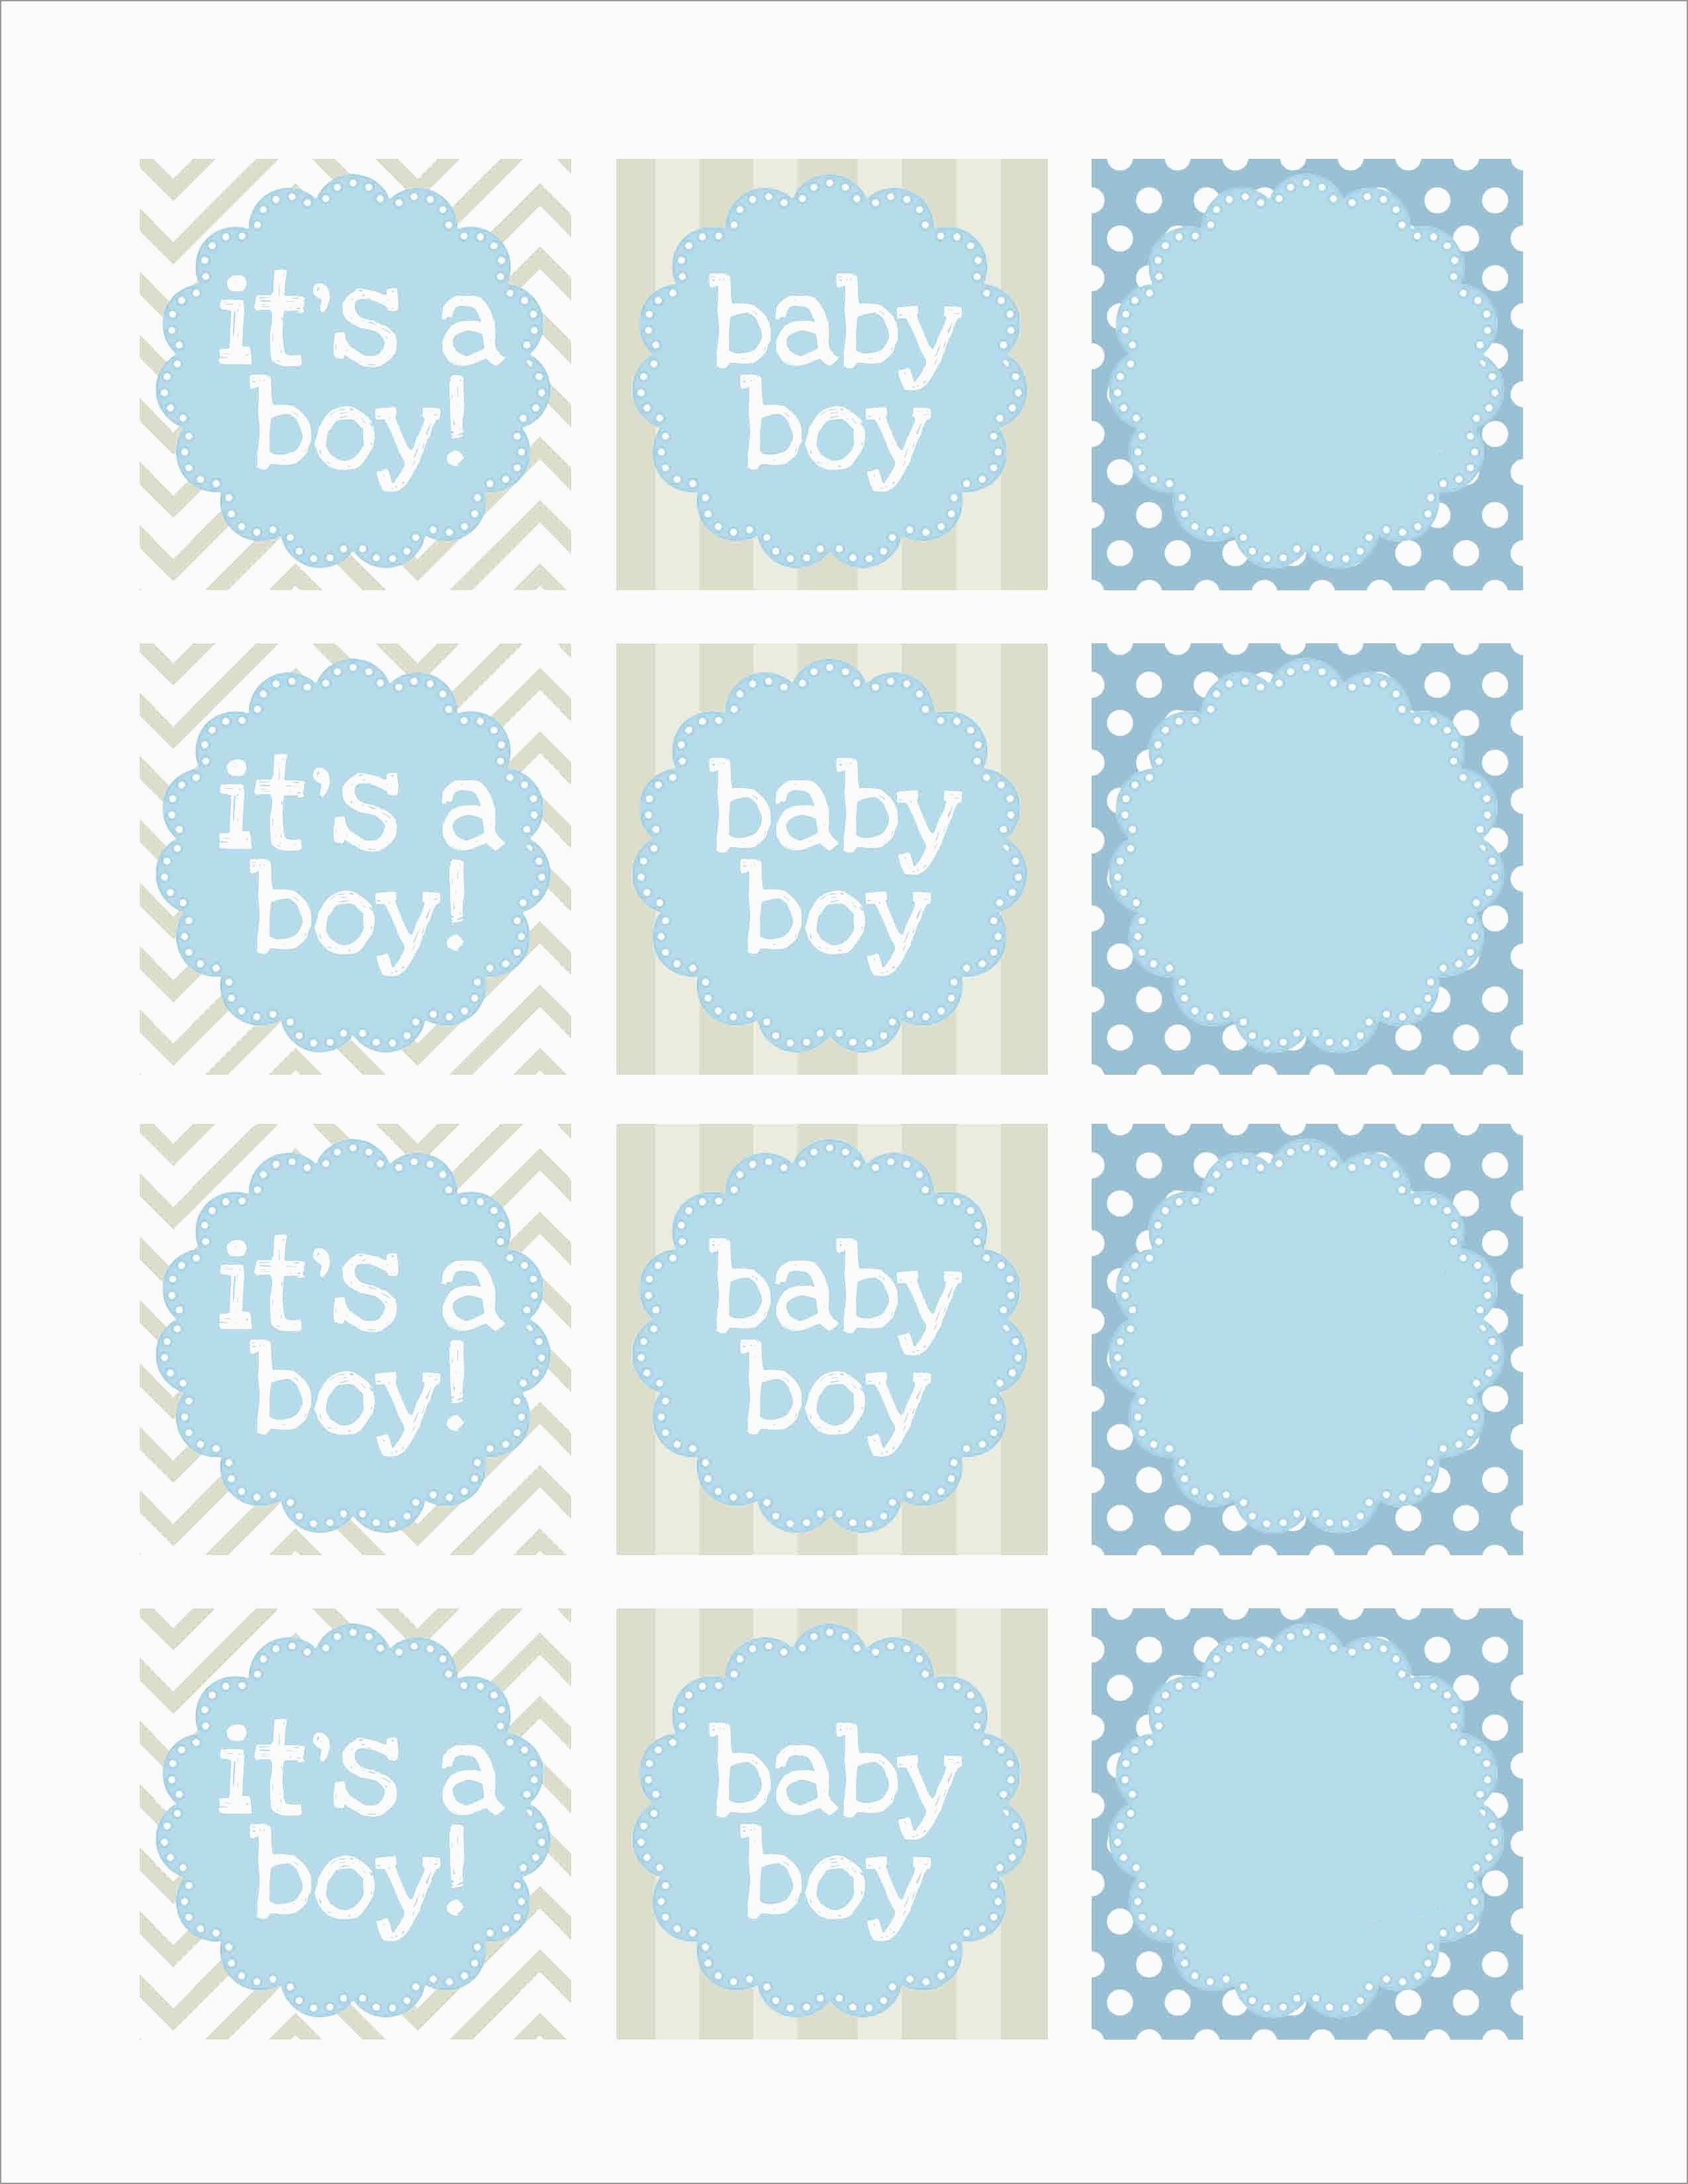 Bridal Shower Favor Tags Template Free Awesome Dress Labels Gift - Free Printable Baby Shower Label Templates